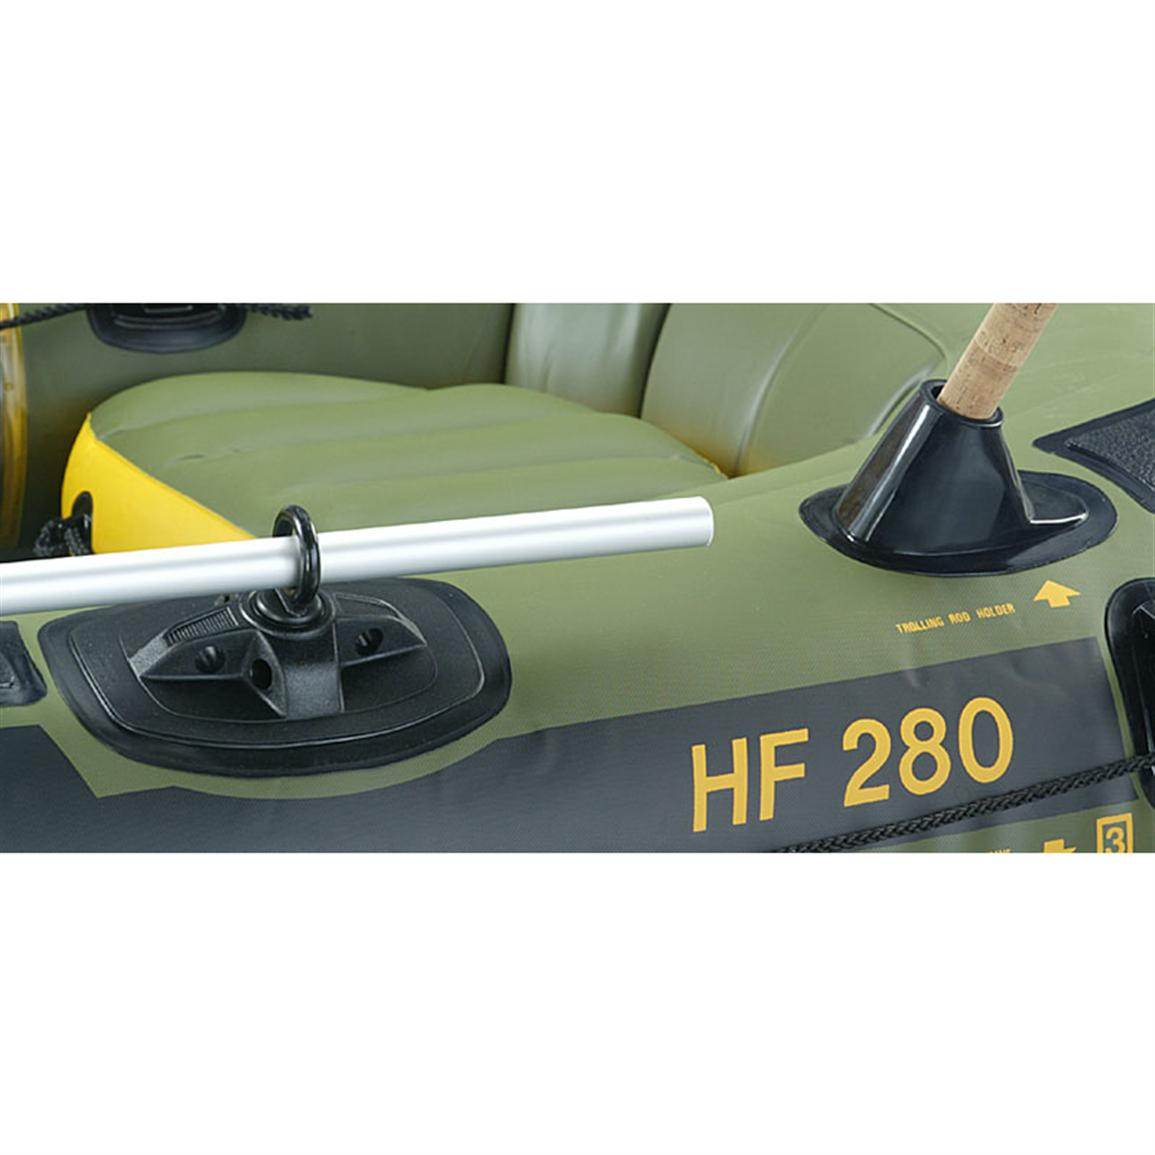 Sevylor fishing hunting inflatable boat package with Aluminum boat and motor packages